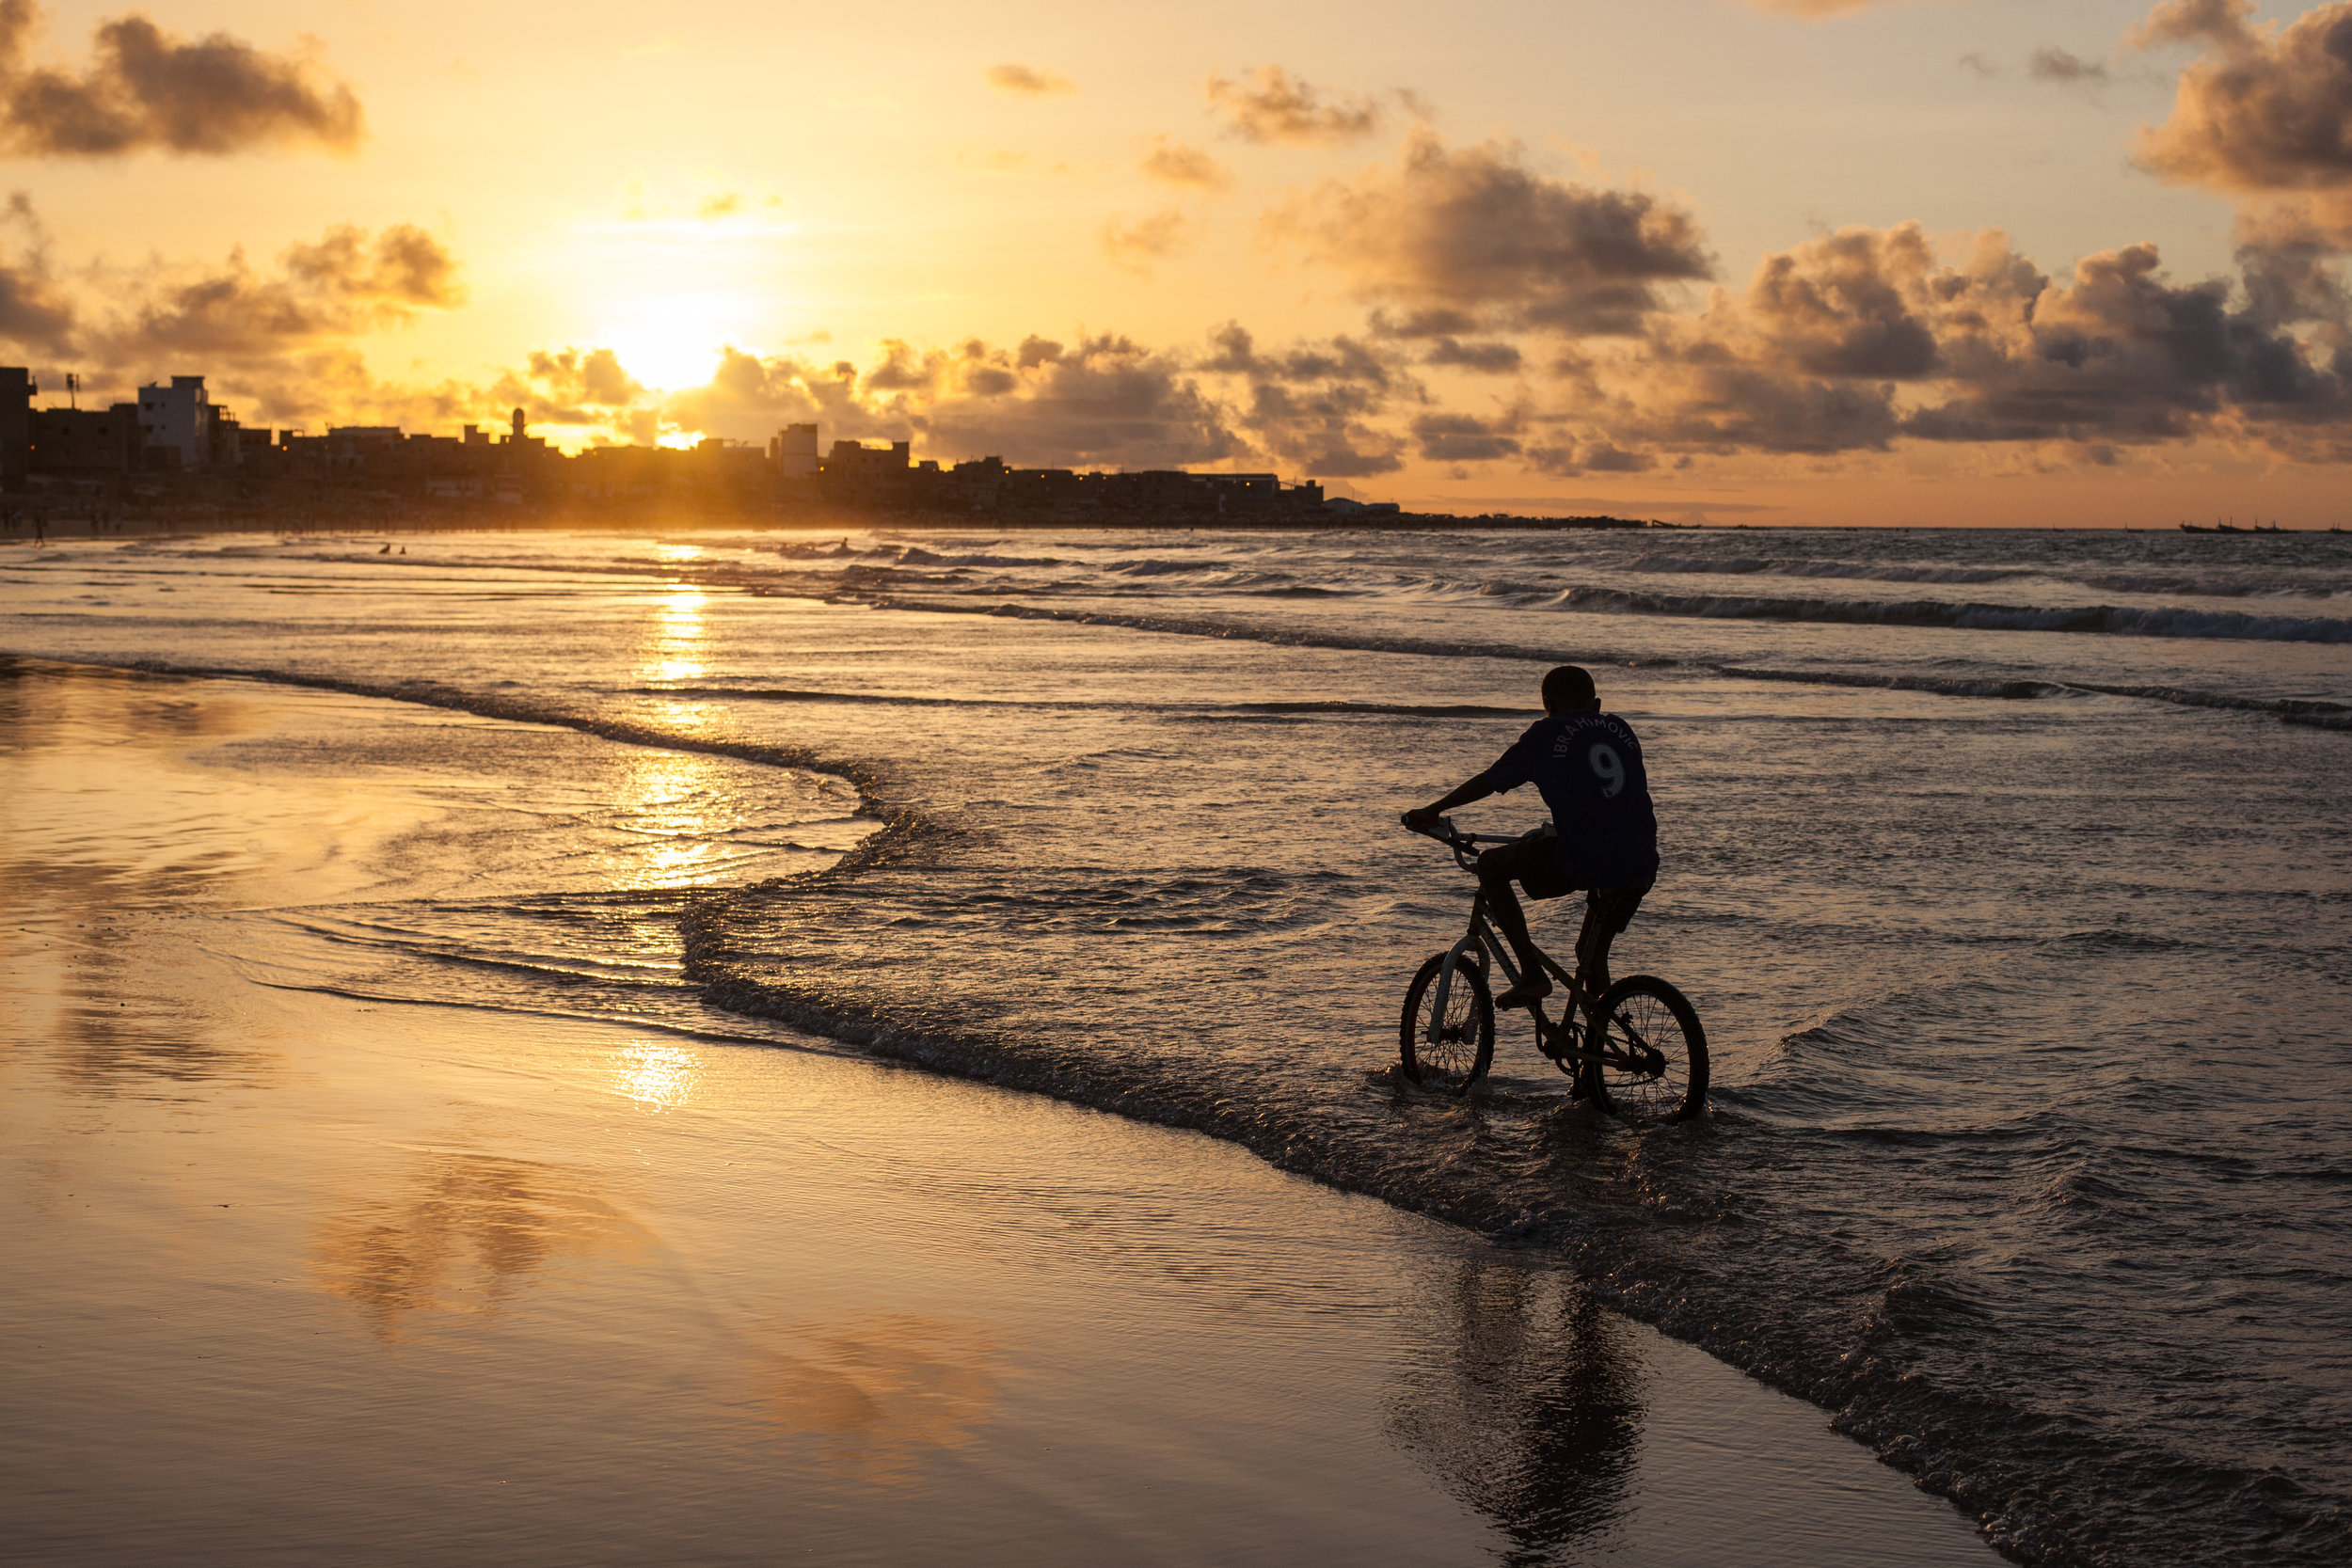 A boy rides his BMX bike along Yoff beach in Dakar at sunset.